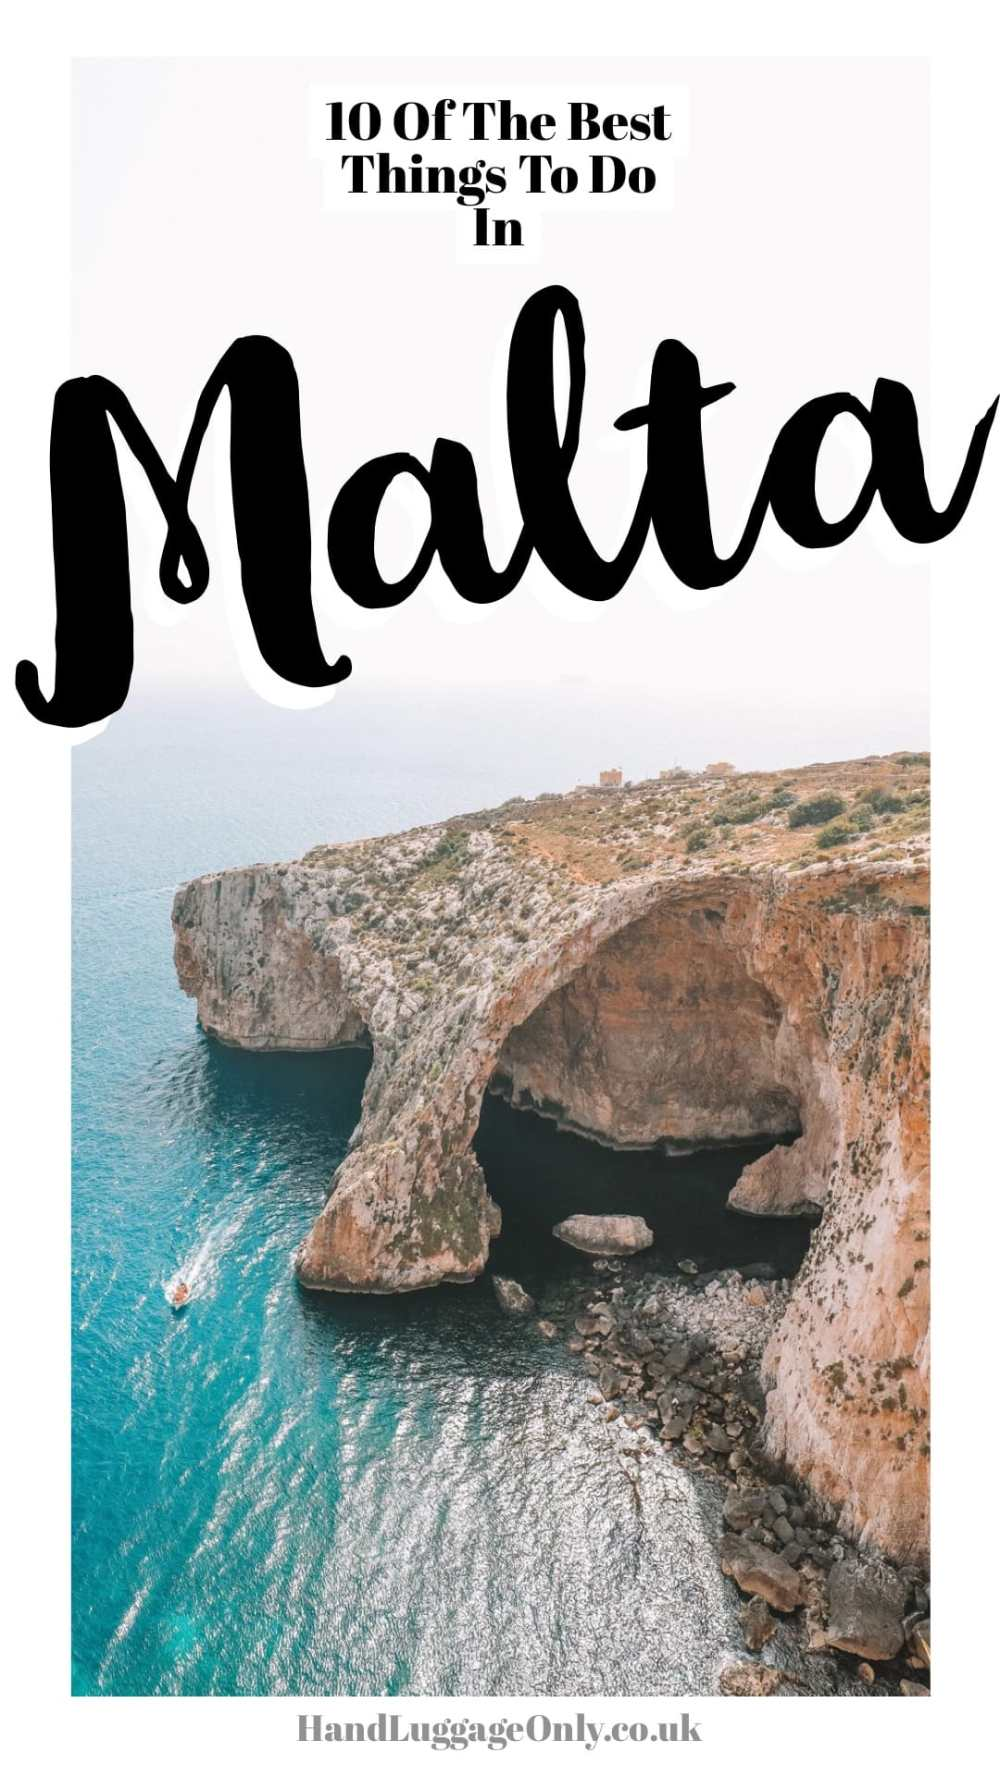 Best Things To Do In Malta & Gozo (1)